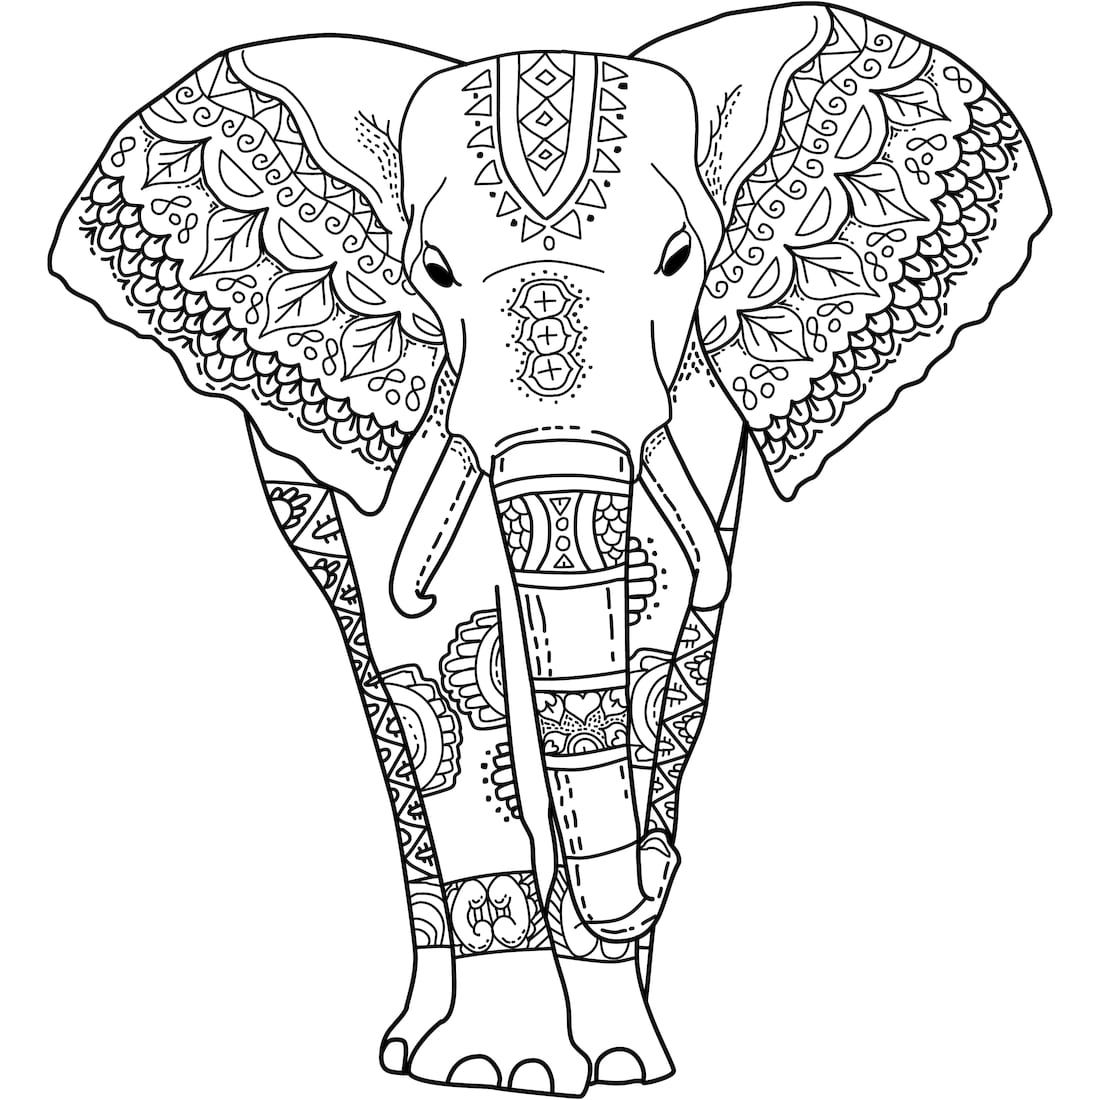 This is mystical elephant a coloring page for you to Coloring book elephant